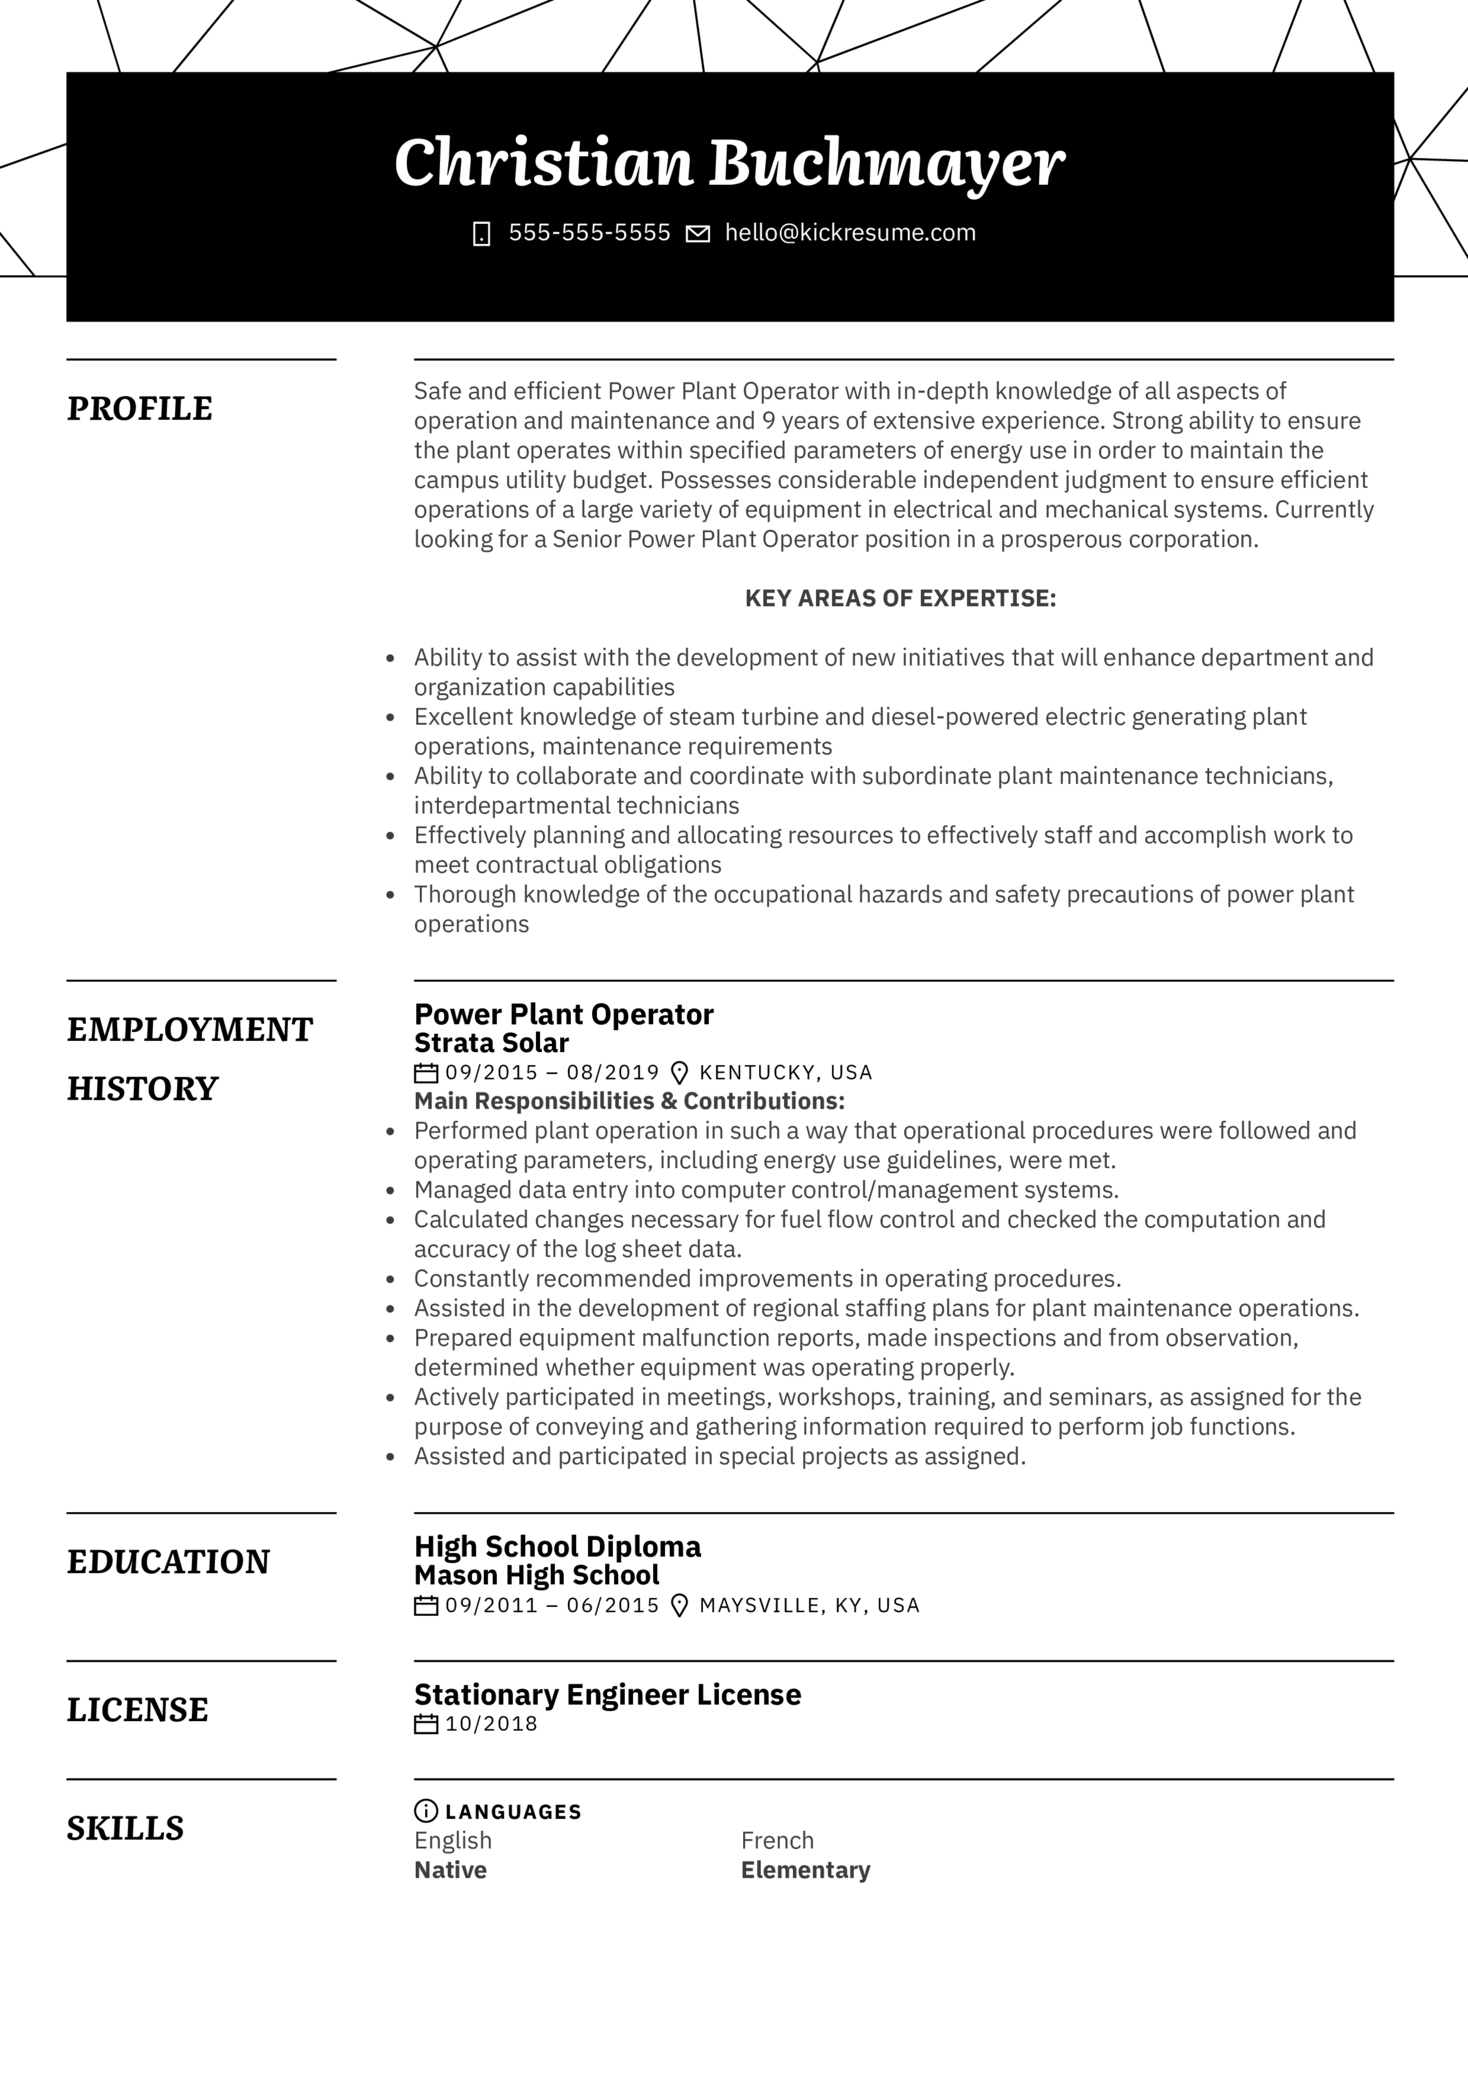 Power Plant Operator Resume Example